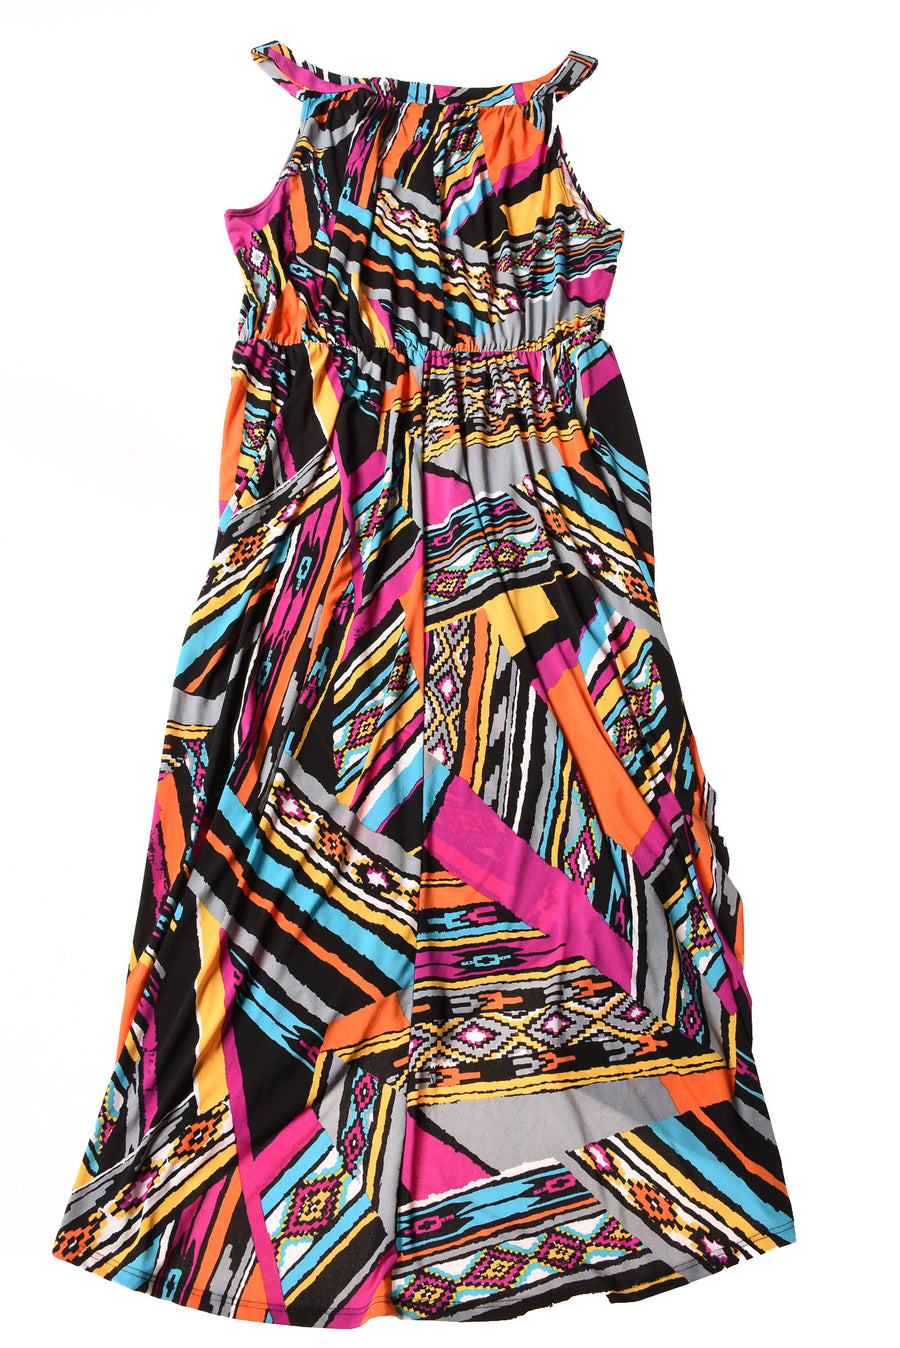 USED Antthony Women's Dress 1X Multi-Color